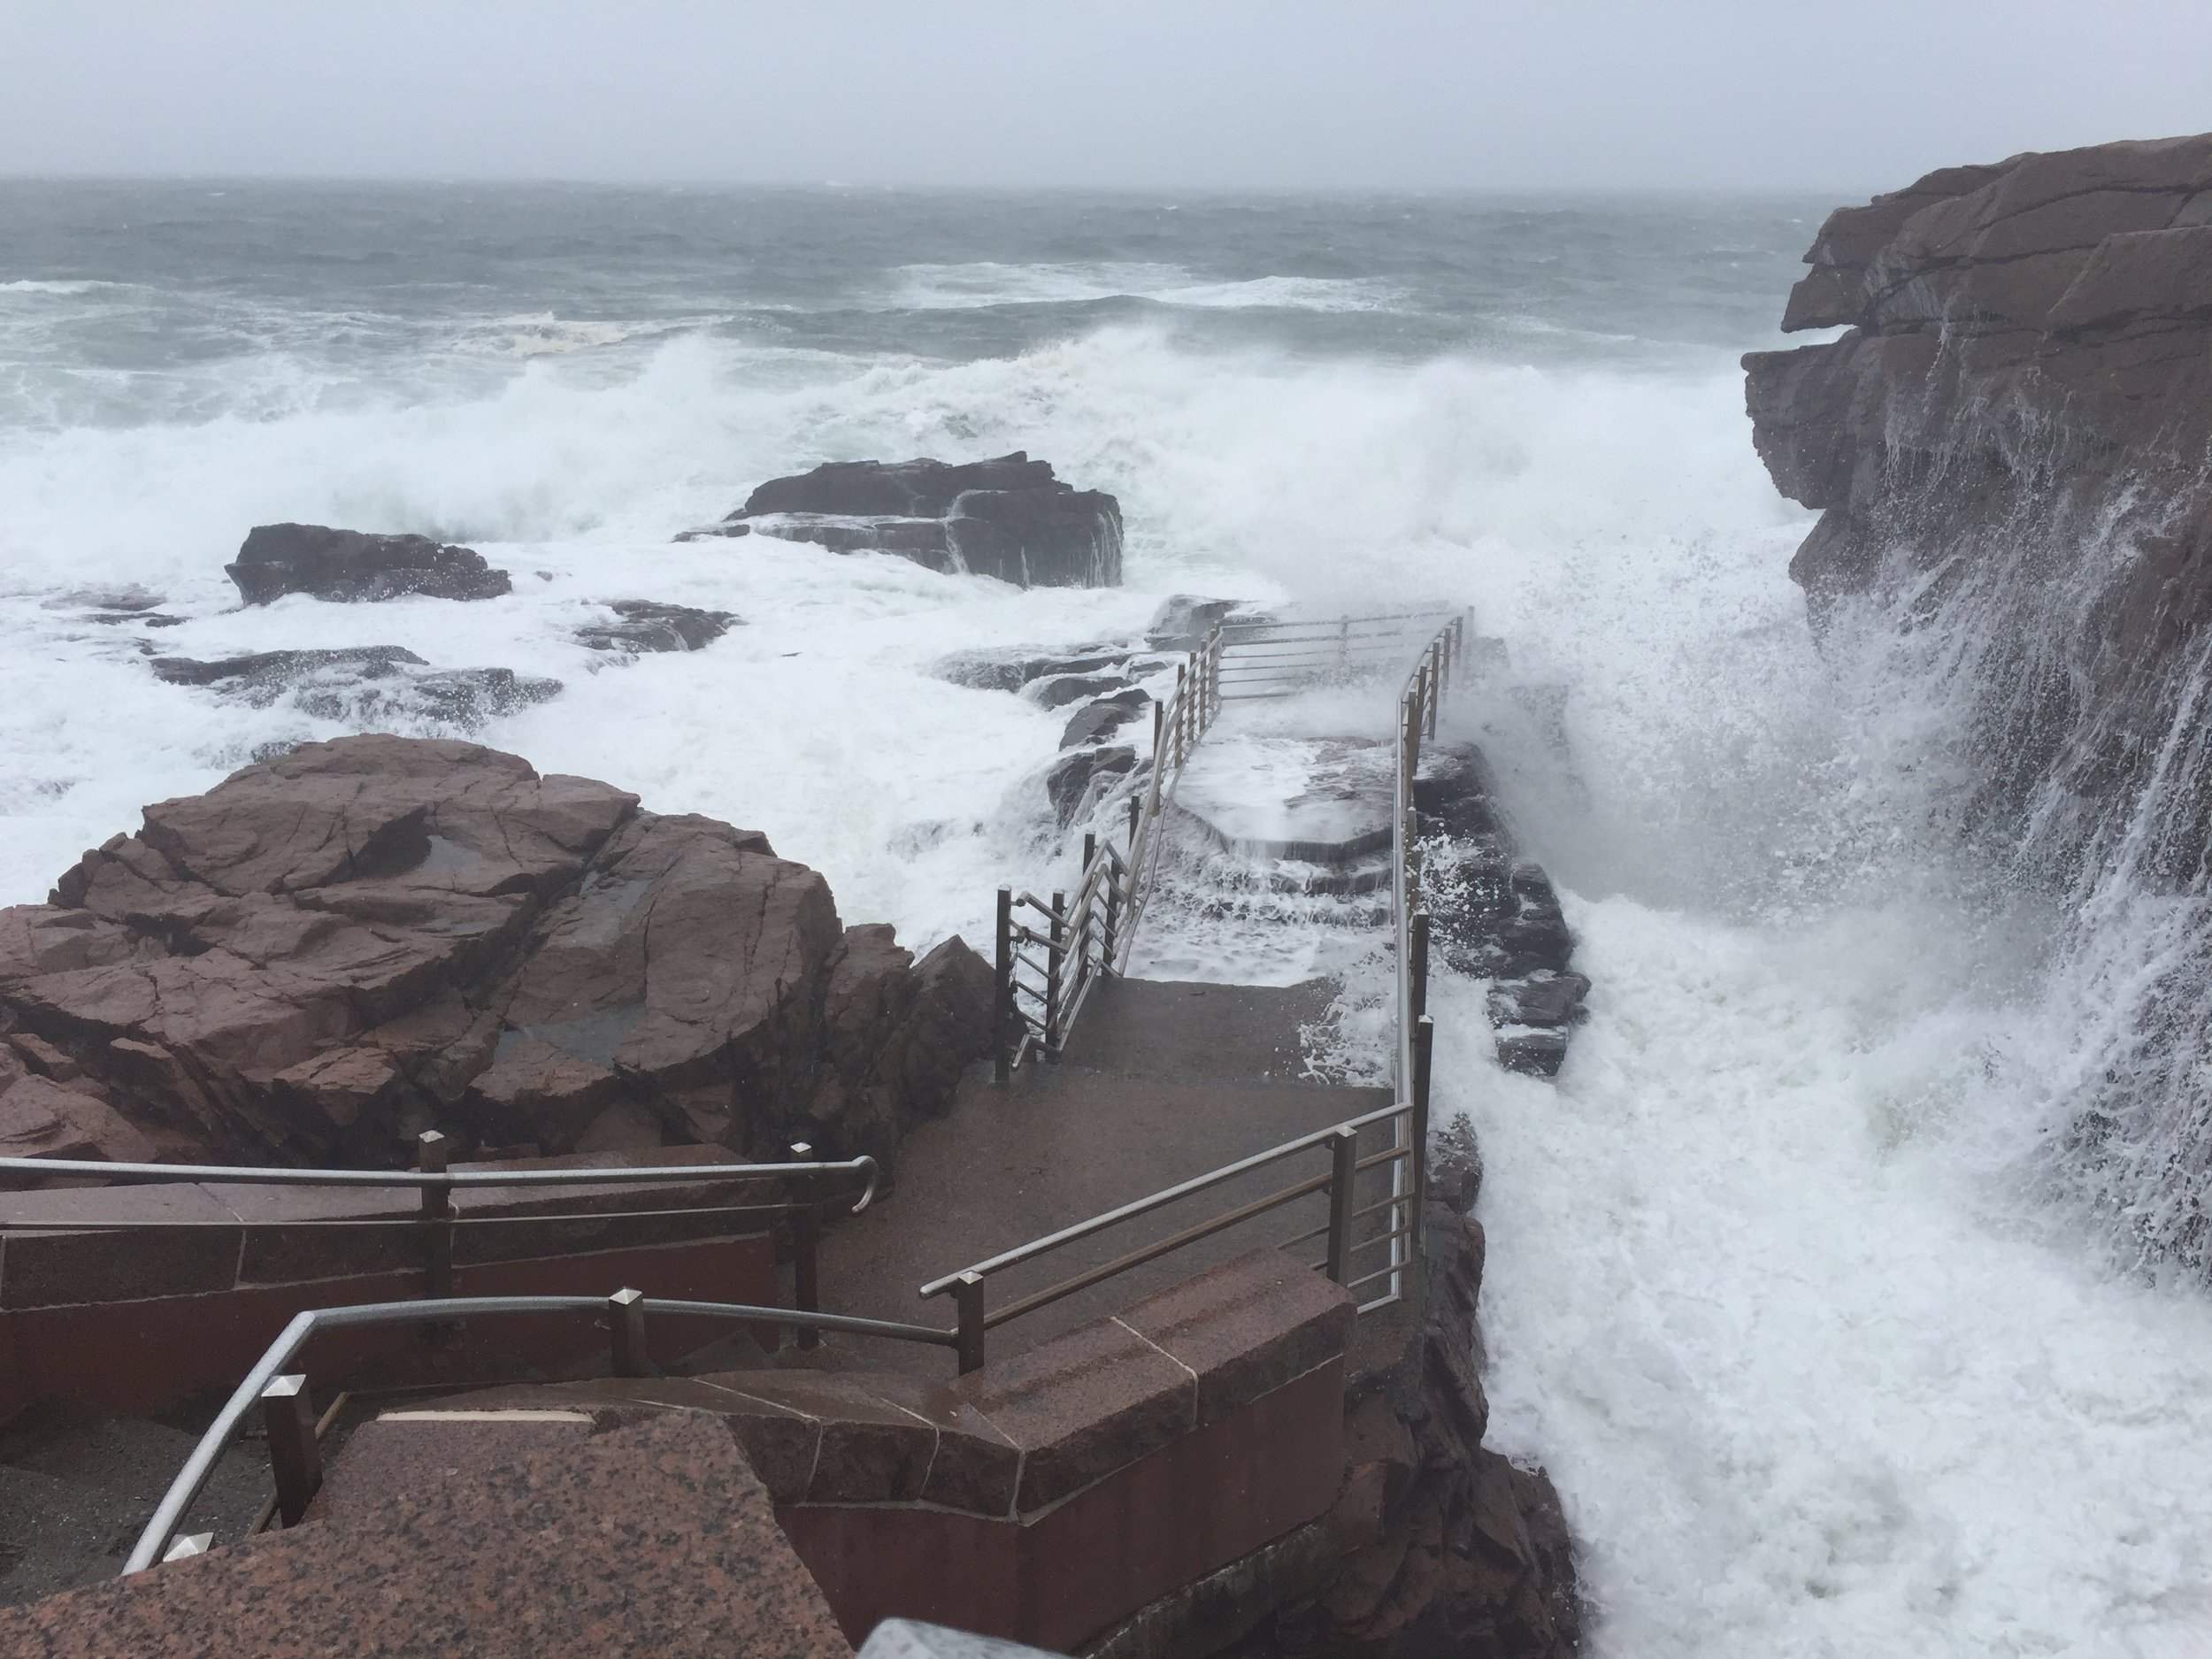 Thunder Hole during a storm - normally it's safe to walk down there